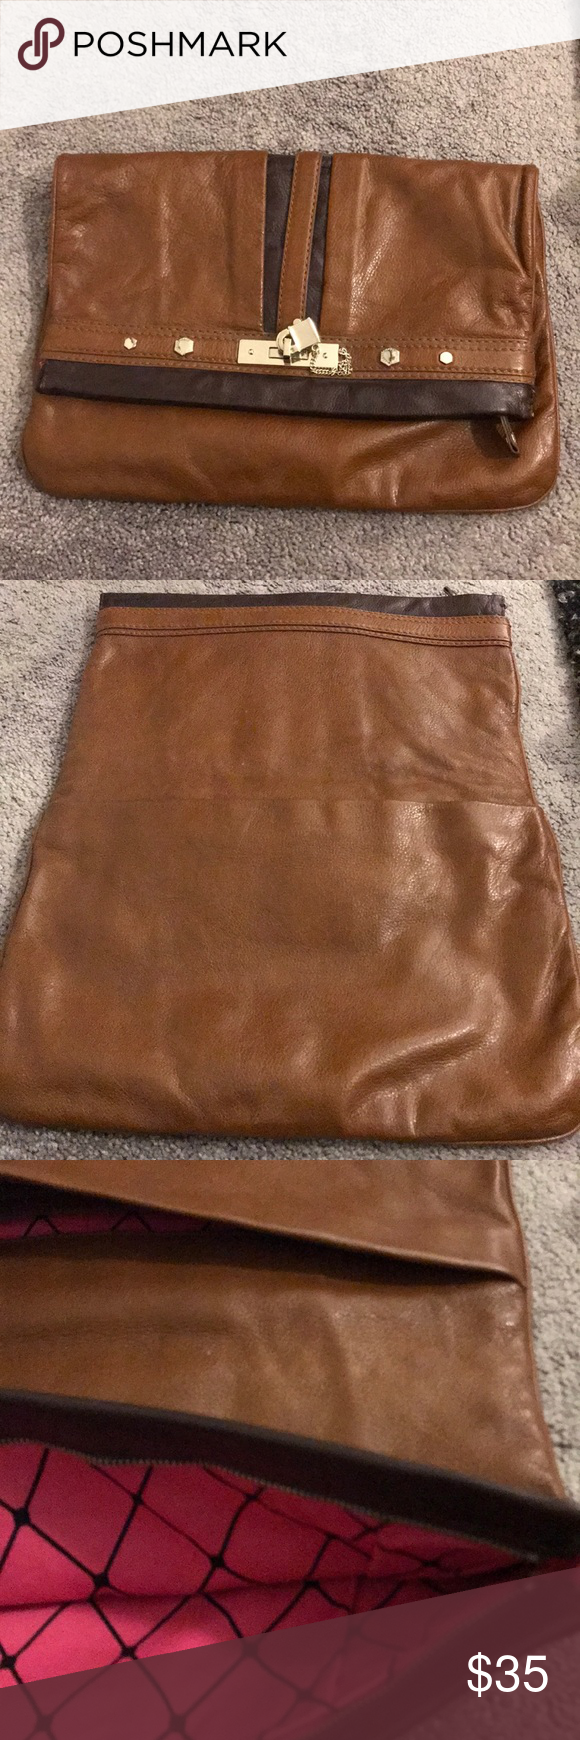 Marc Jacobs clutch Leather brown hand held clutch has two inside pockets top has zipper n is large mint condition pink fabric inside Marc Jacobs Bags Clutches & Wristlets